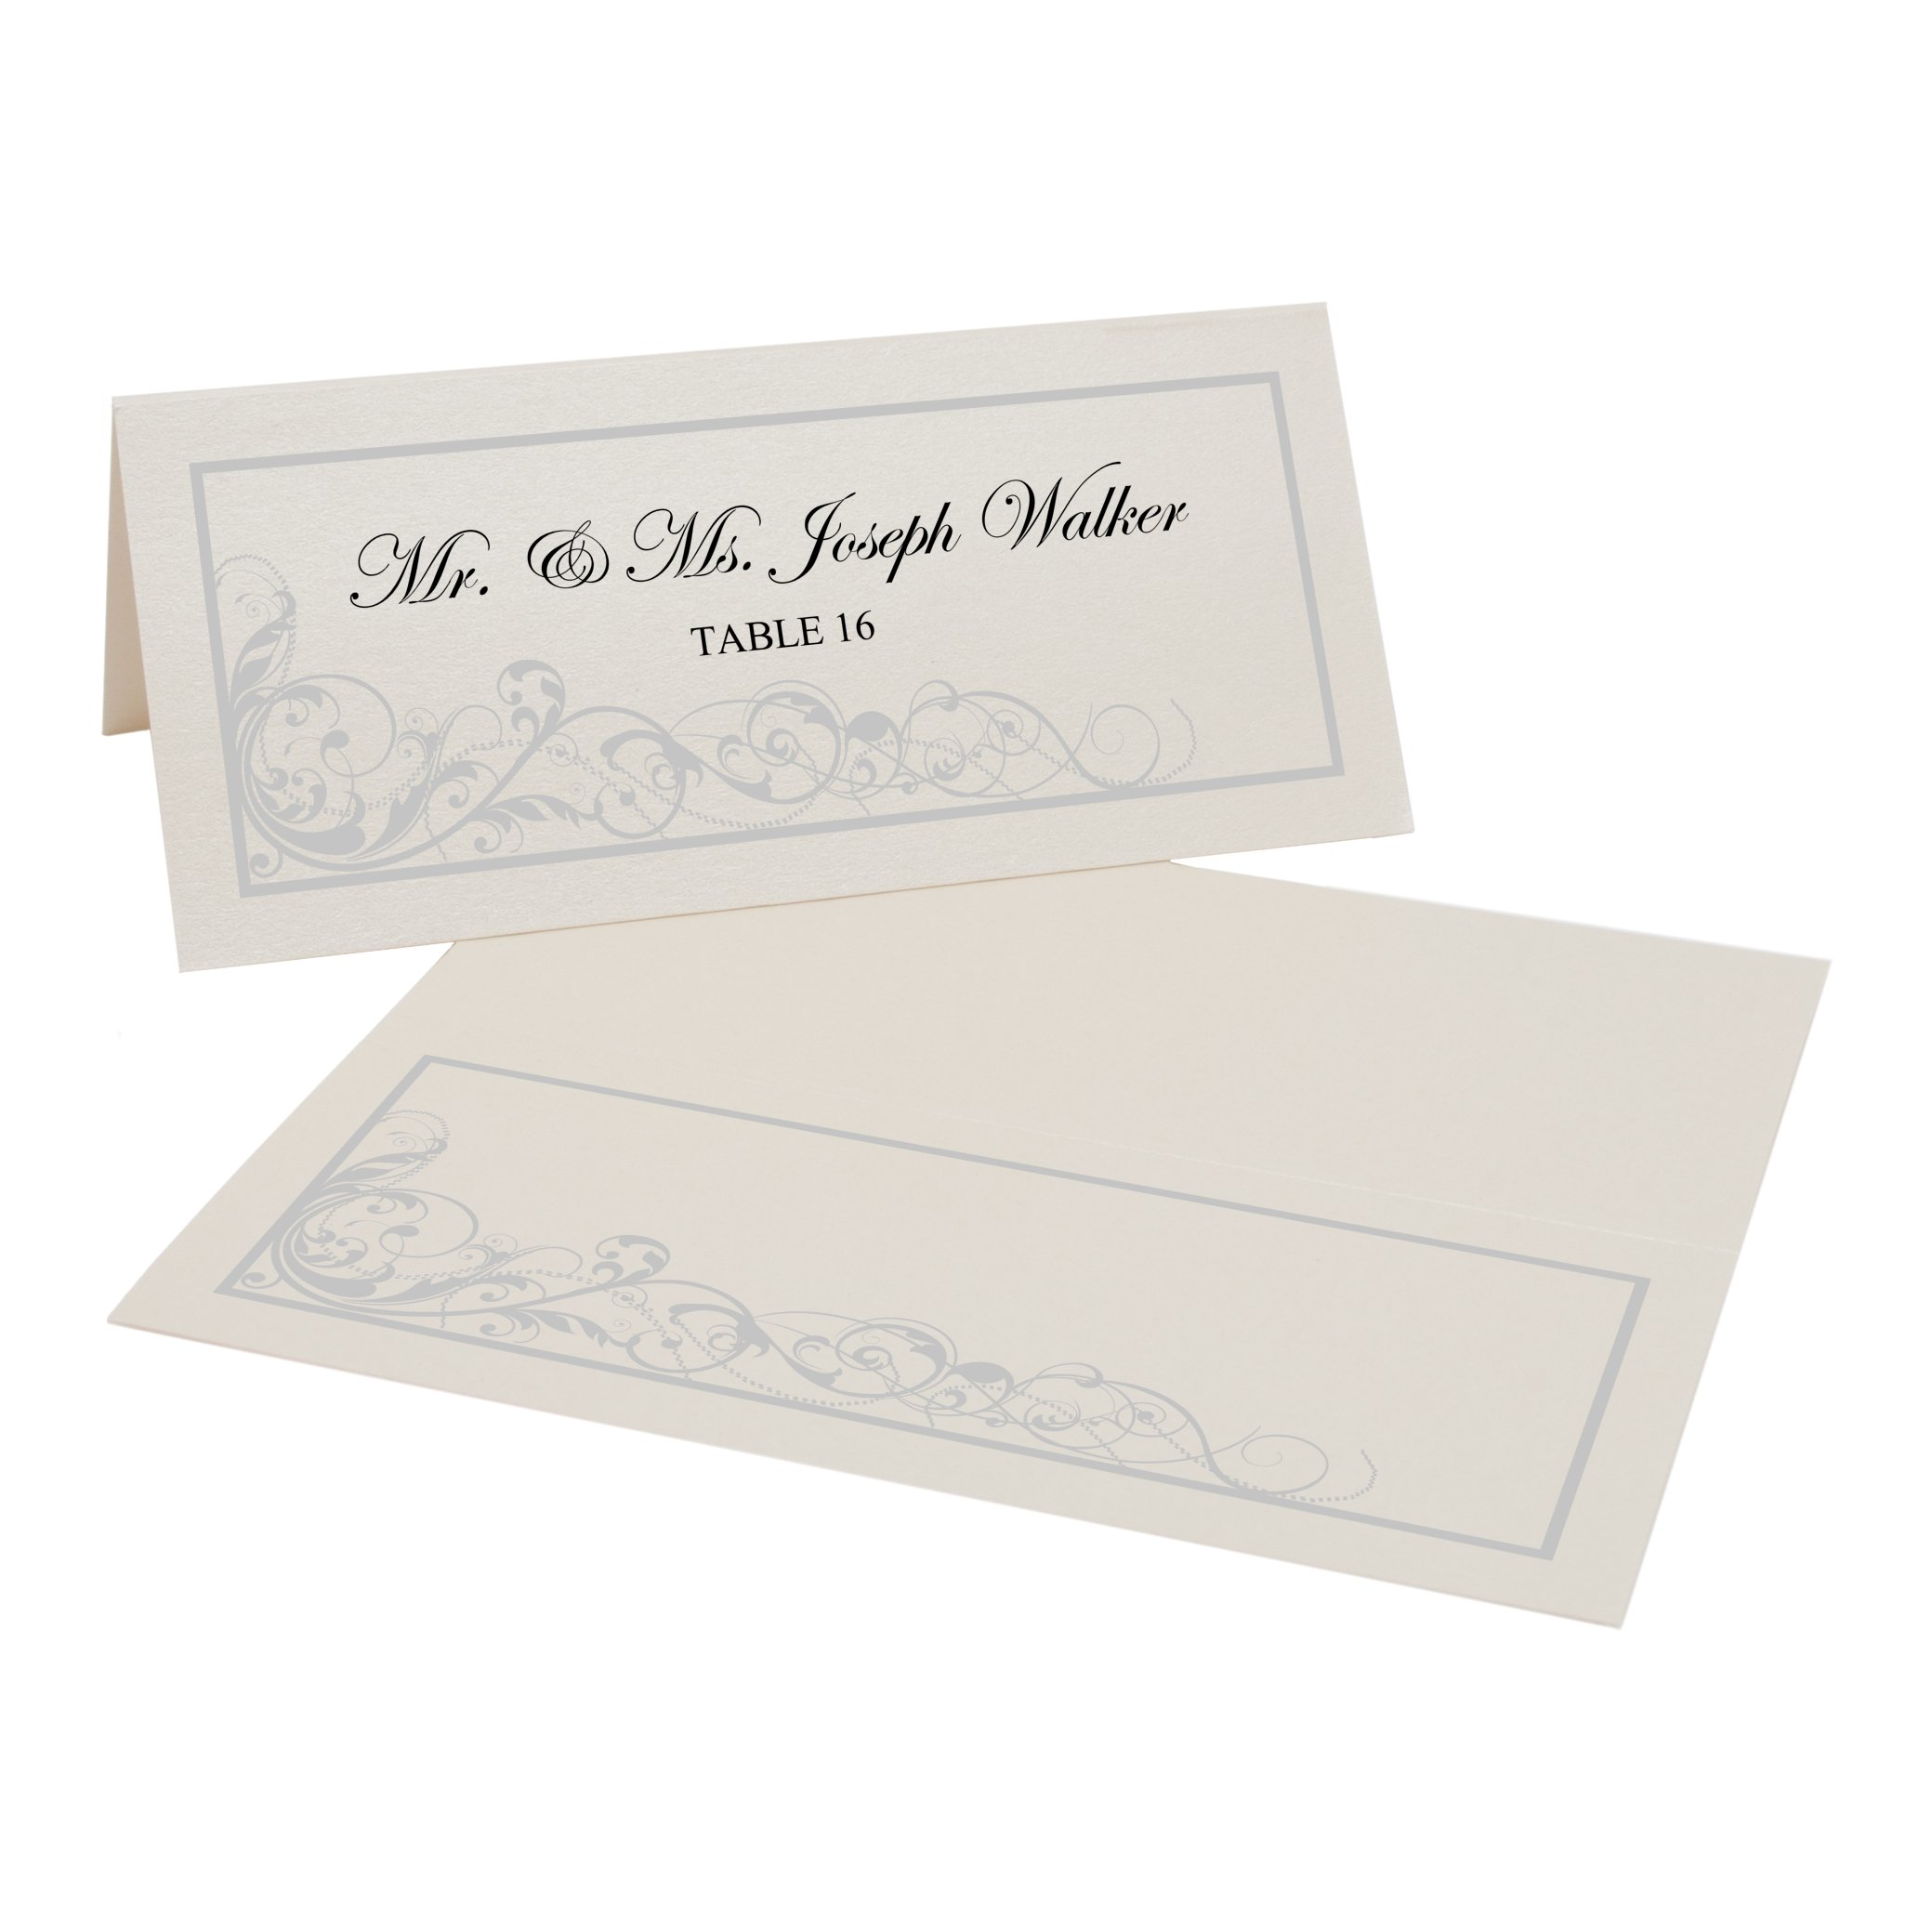 Scribble Vintage Swirl Easy Print Place Cards, Champagne, Silver, Set of 350 (88 Sheets)